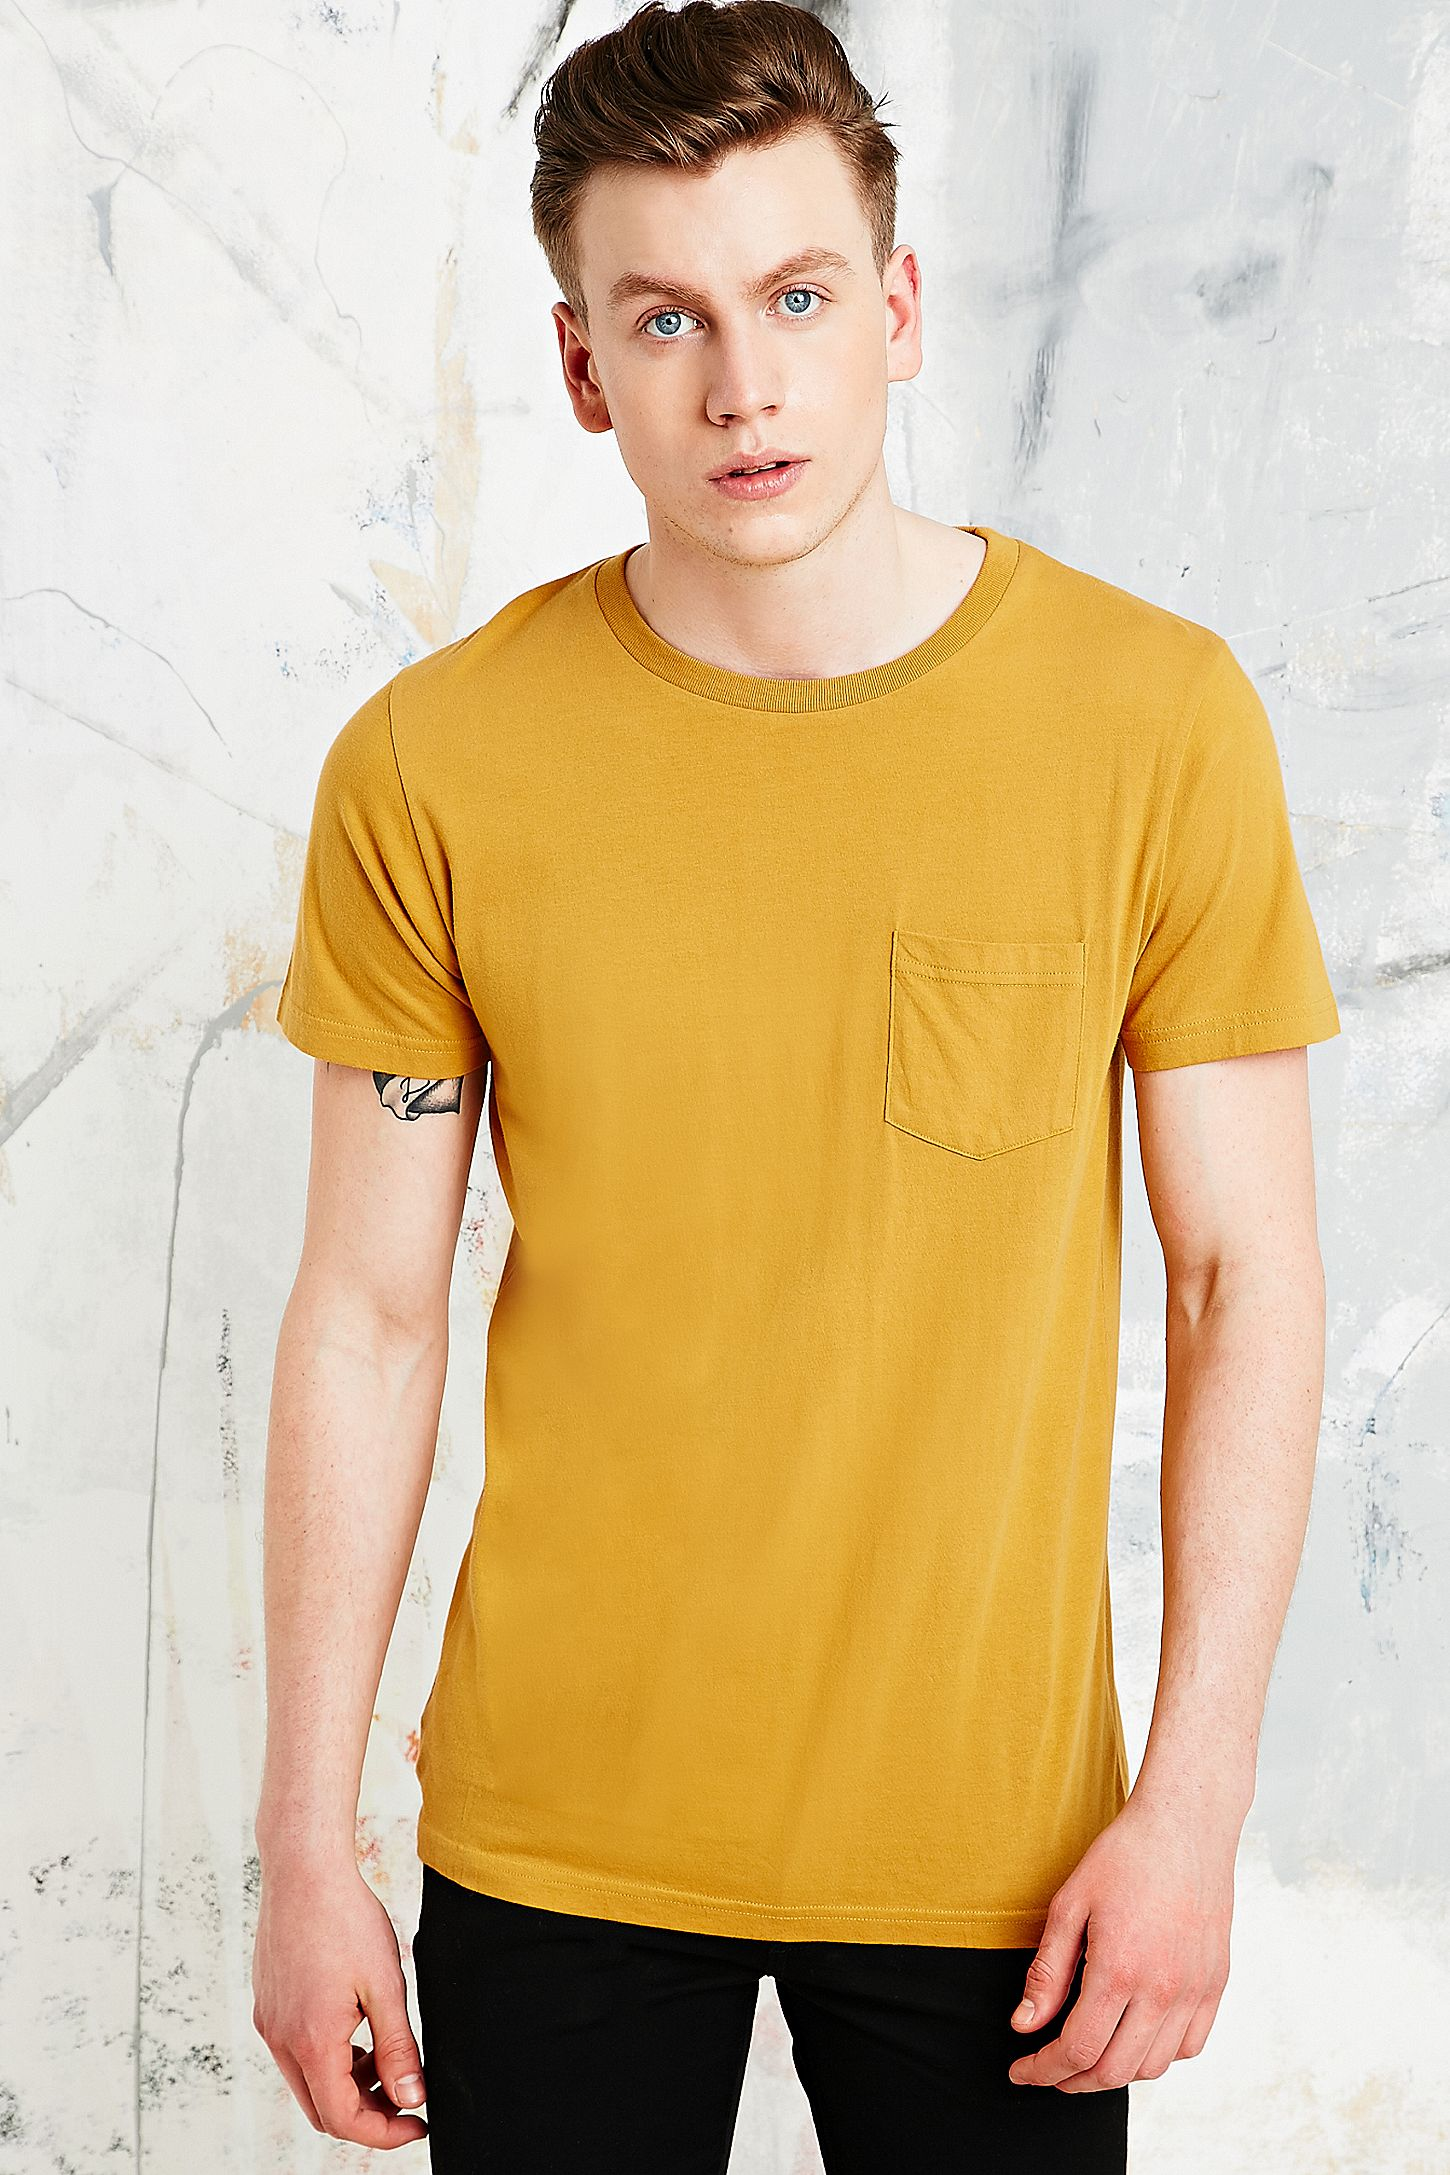 3d203ced4 Commodity Stock Pocket Tee In Mustard Yellow Urban Outfitters Uk